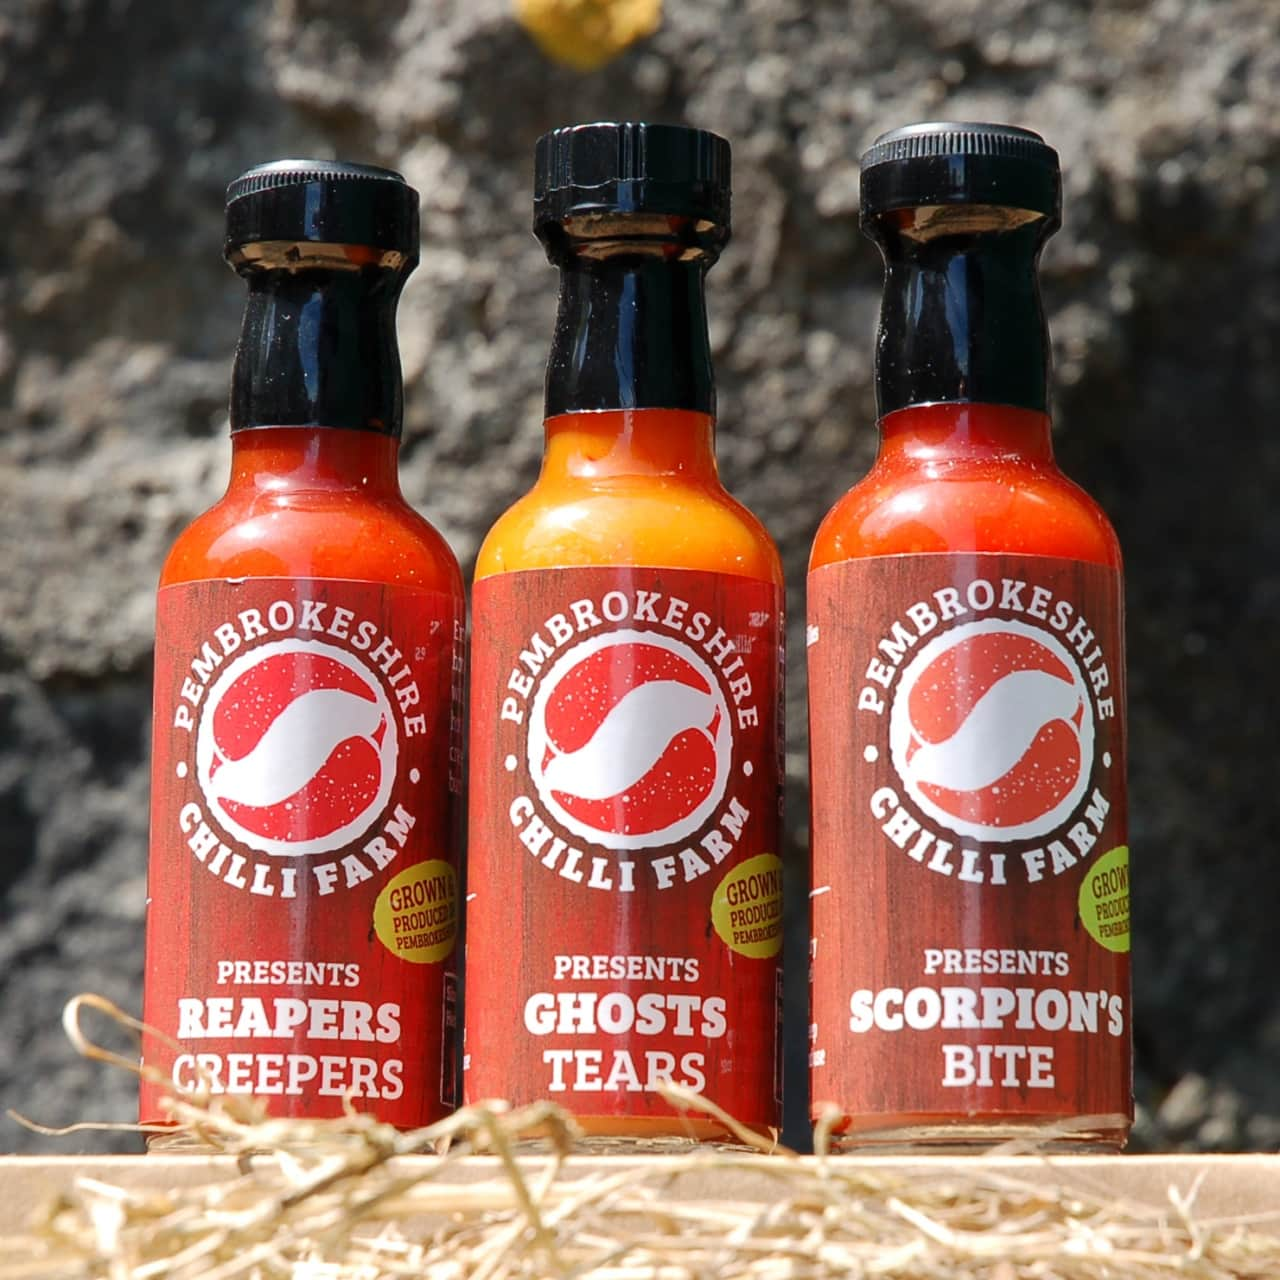 Pembrokeshire Chilli Farm Graphic Design Case Study